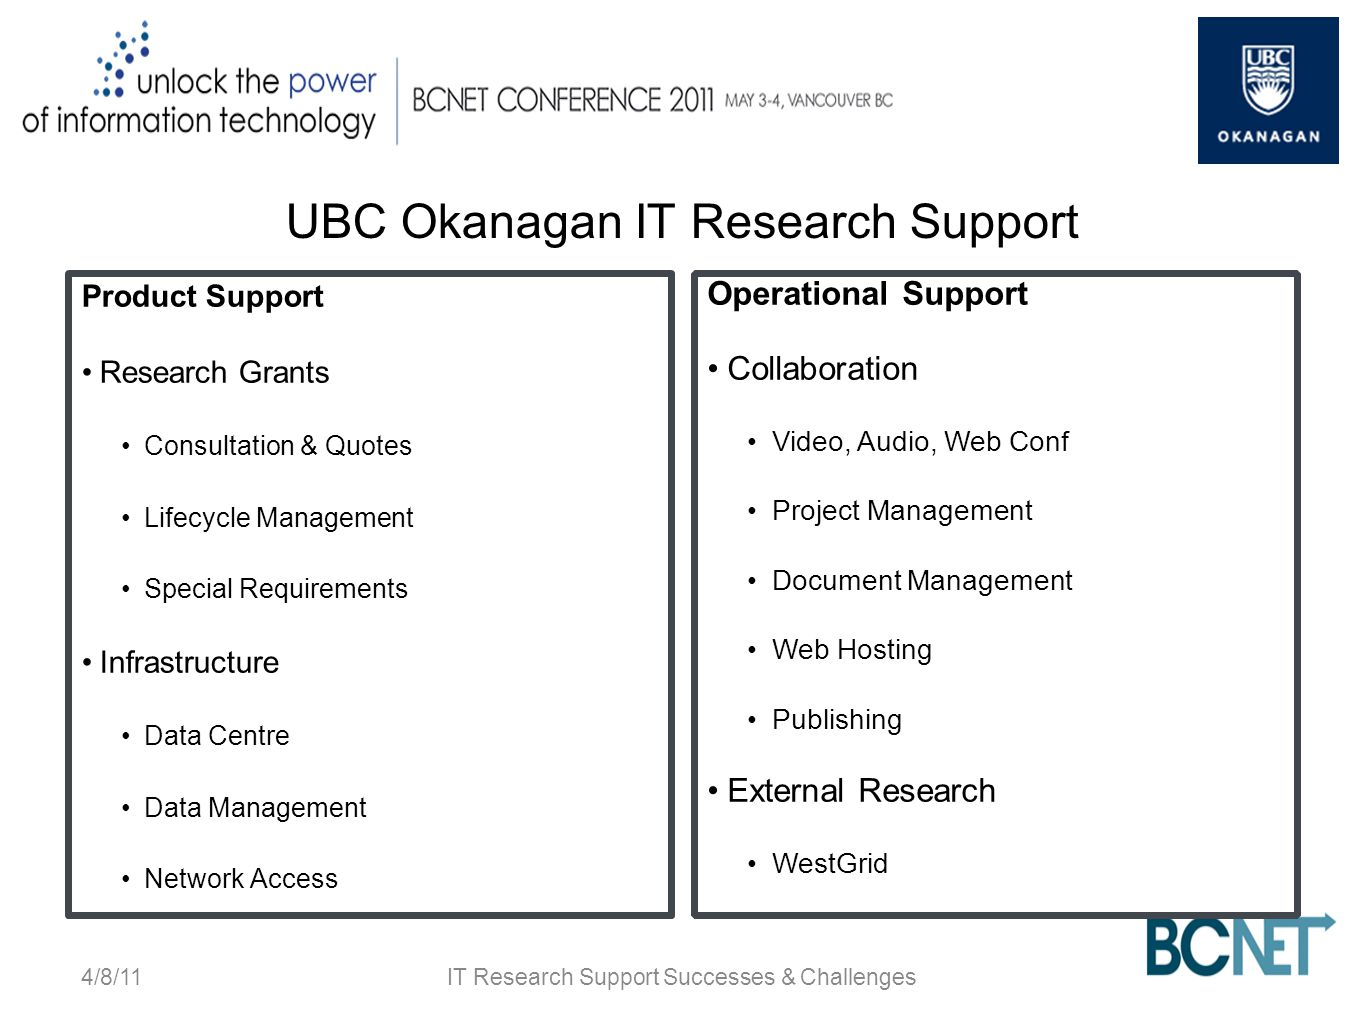 UBC Okanagan IT Research Support Product Support Research Grants Consultation & Quotes Lifecycle Management Special Requirements Infrastructure Data Centre Data Management Network Access Operational Support Collaboration Video, Audio, Web Conf Project Management Document Management Web Hosting Publishing External Research WestGrid 4/8/11IT Research Support Successes & Challenges